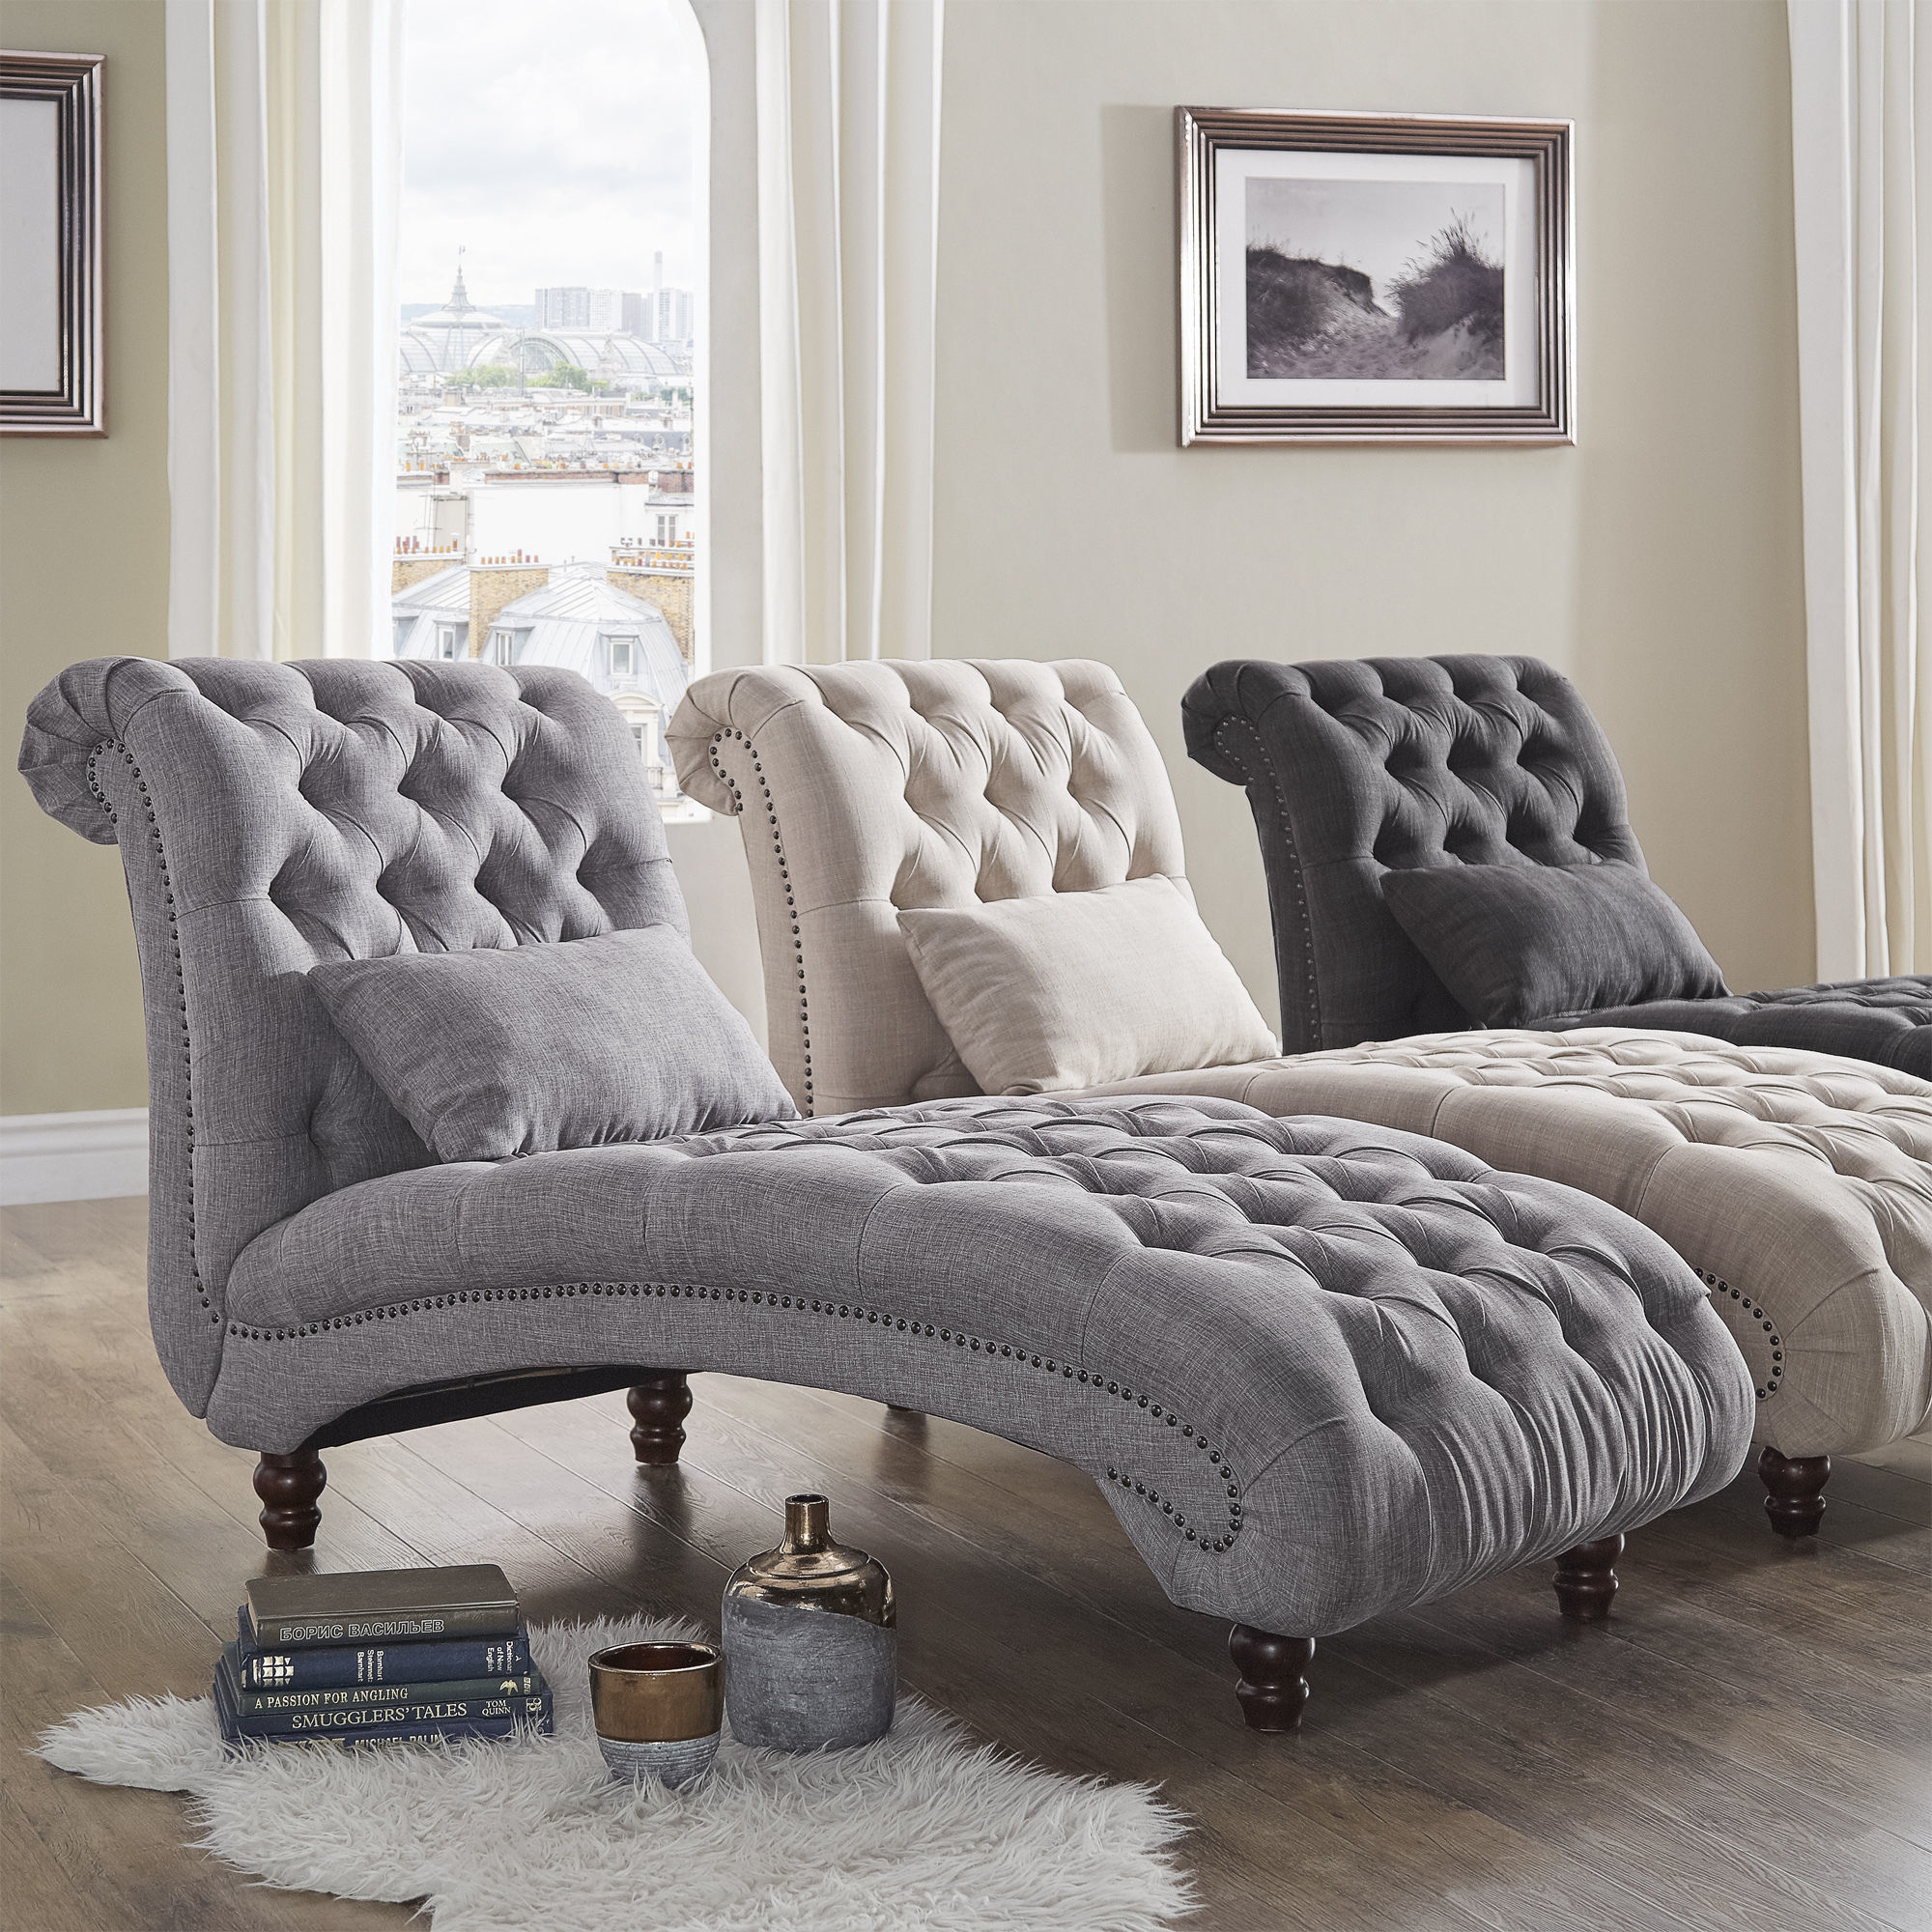 Furniture Chaise Knightsbridge Tufted Oversized Chaise Lounge By Inspire Q Artisan